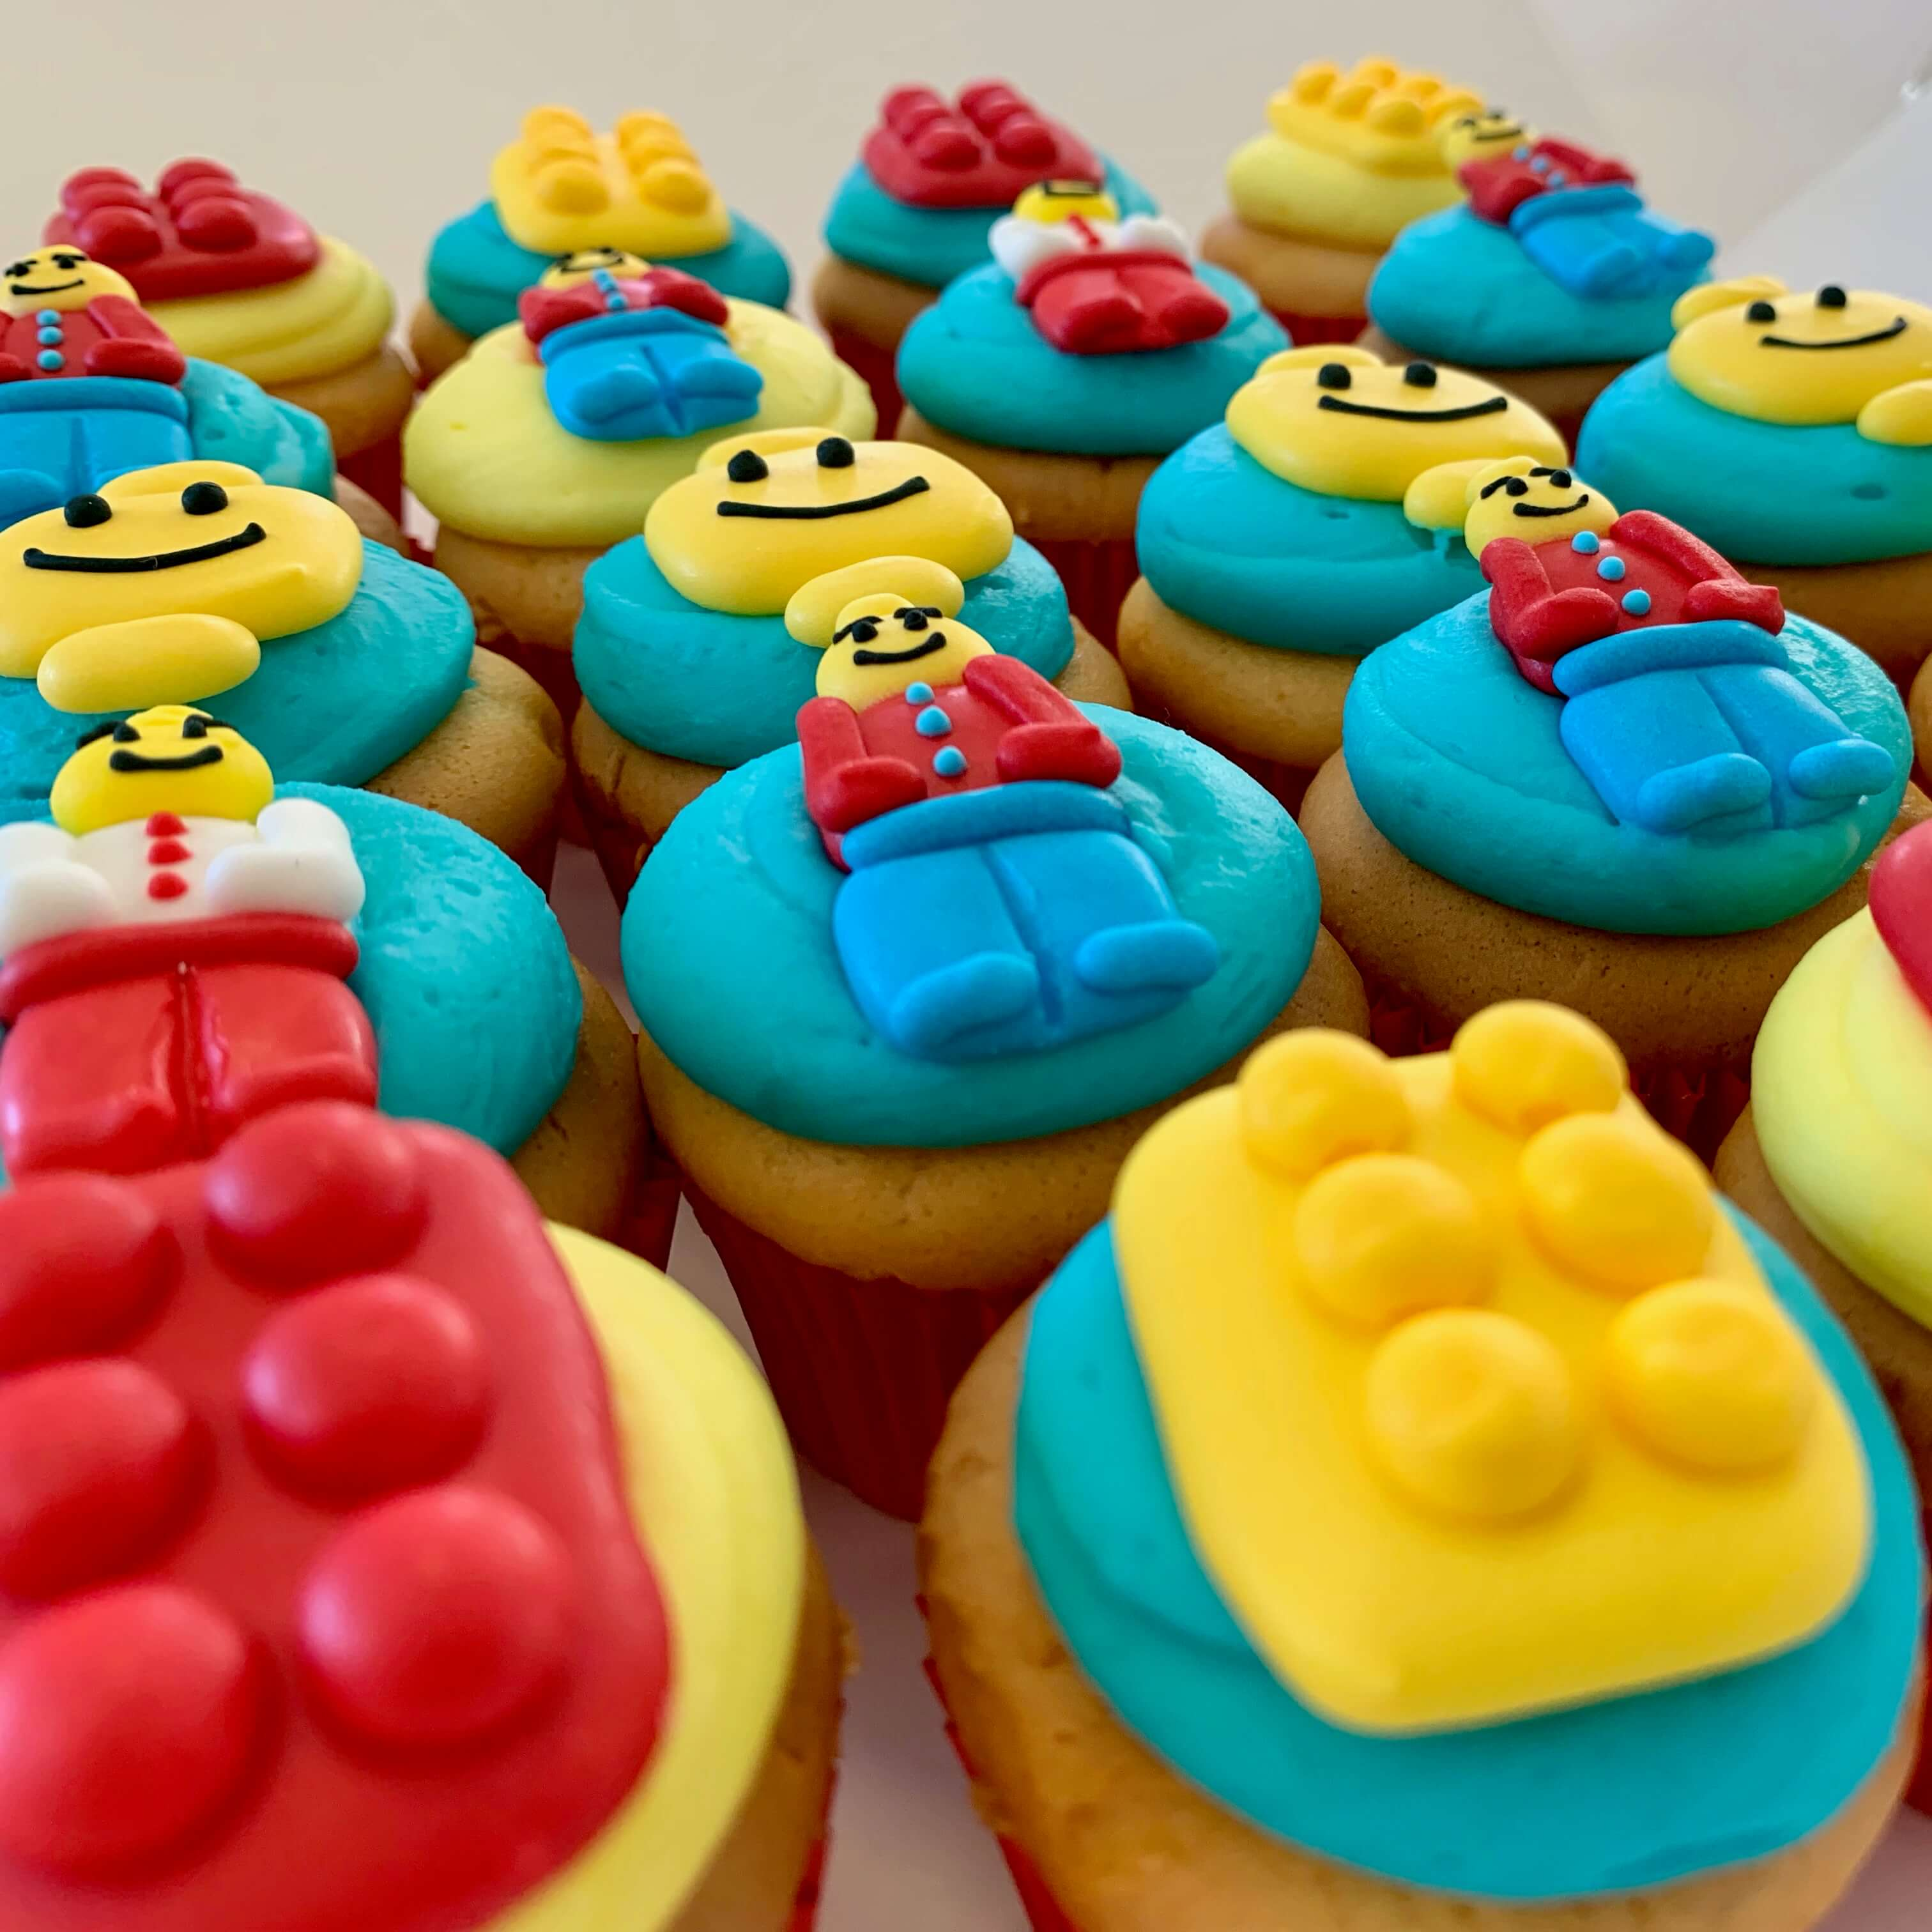 BRICKS 4 KIDZ | Kids Brthday Party Venue Food | LEGO Cupcakes BRICKS 4 KIDZ | Kids Brthday Party Venue Food | LEGO Cupcakes 1